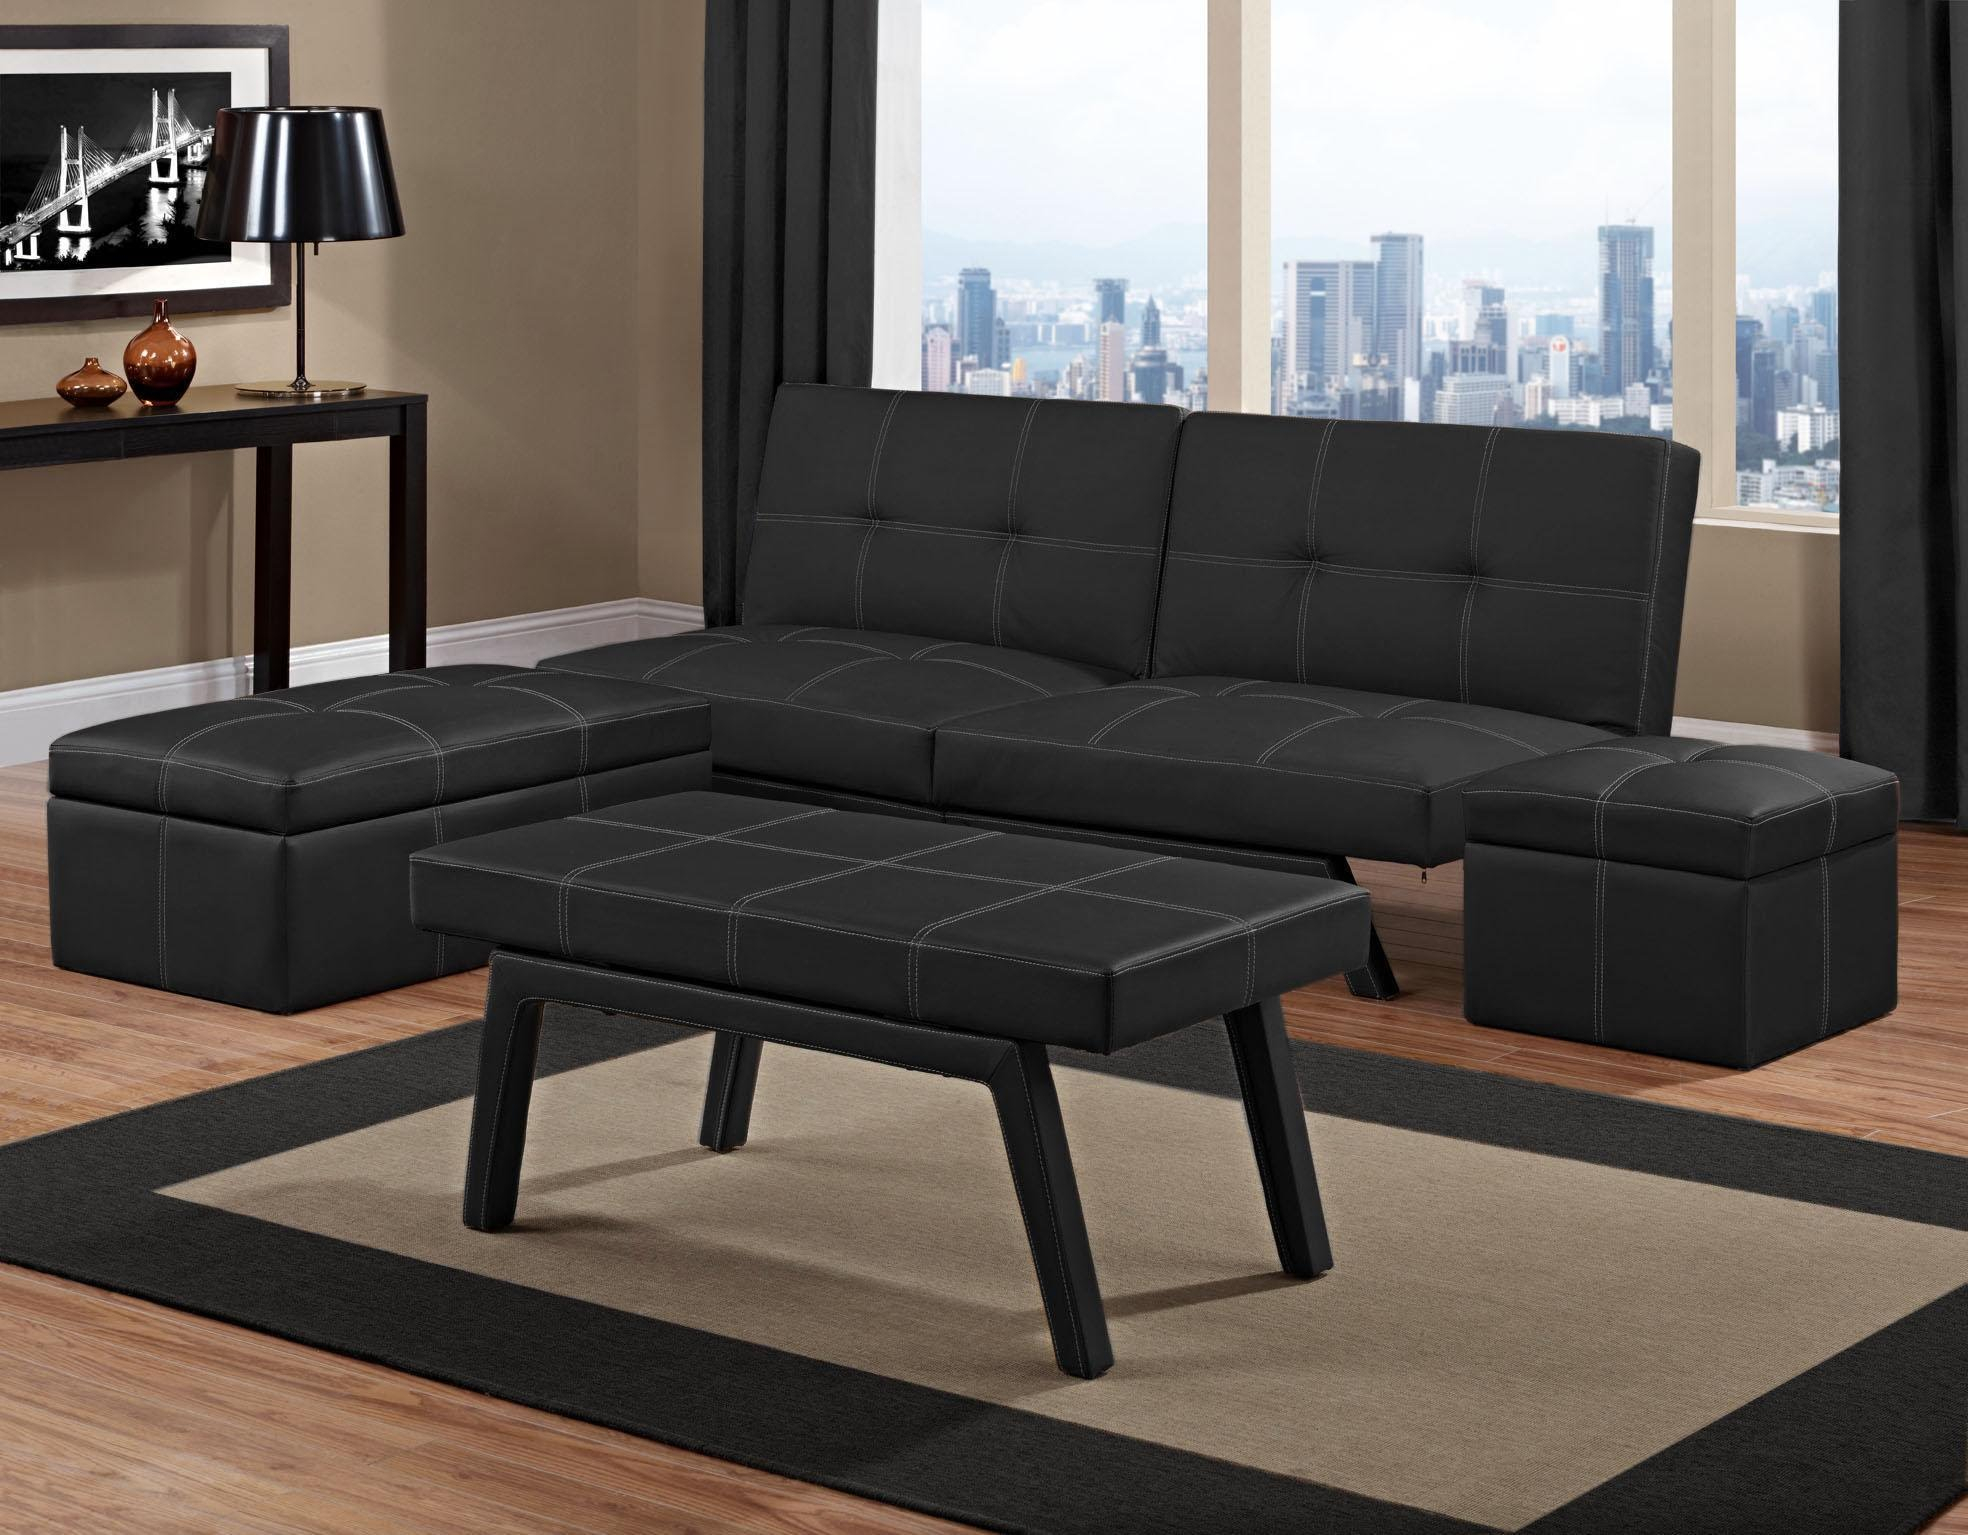 Futon Living Room Set Amusing Fancy Futon Sofa Bed Living Room Set in 10 Genius Concepts of How to Make Futon Living Room Set